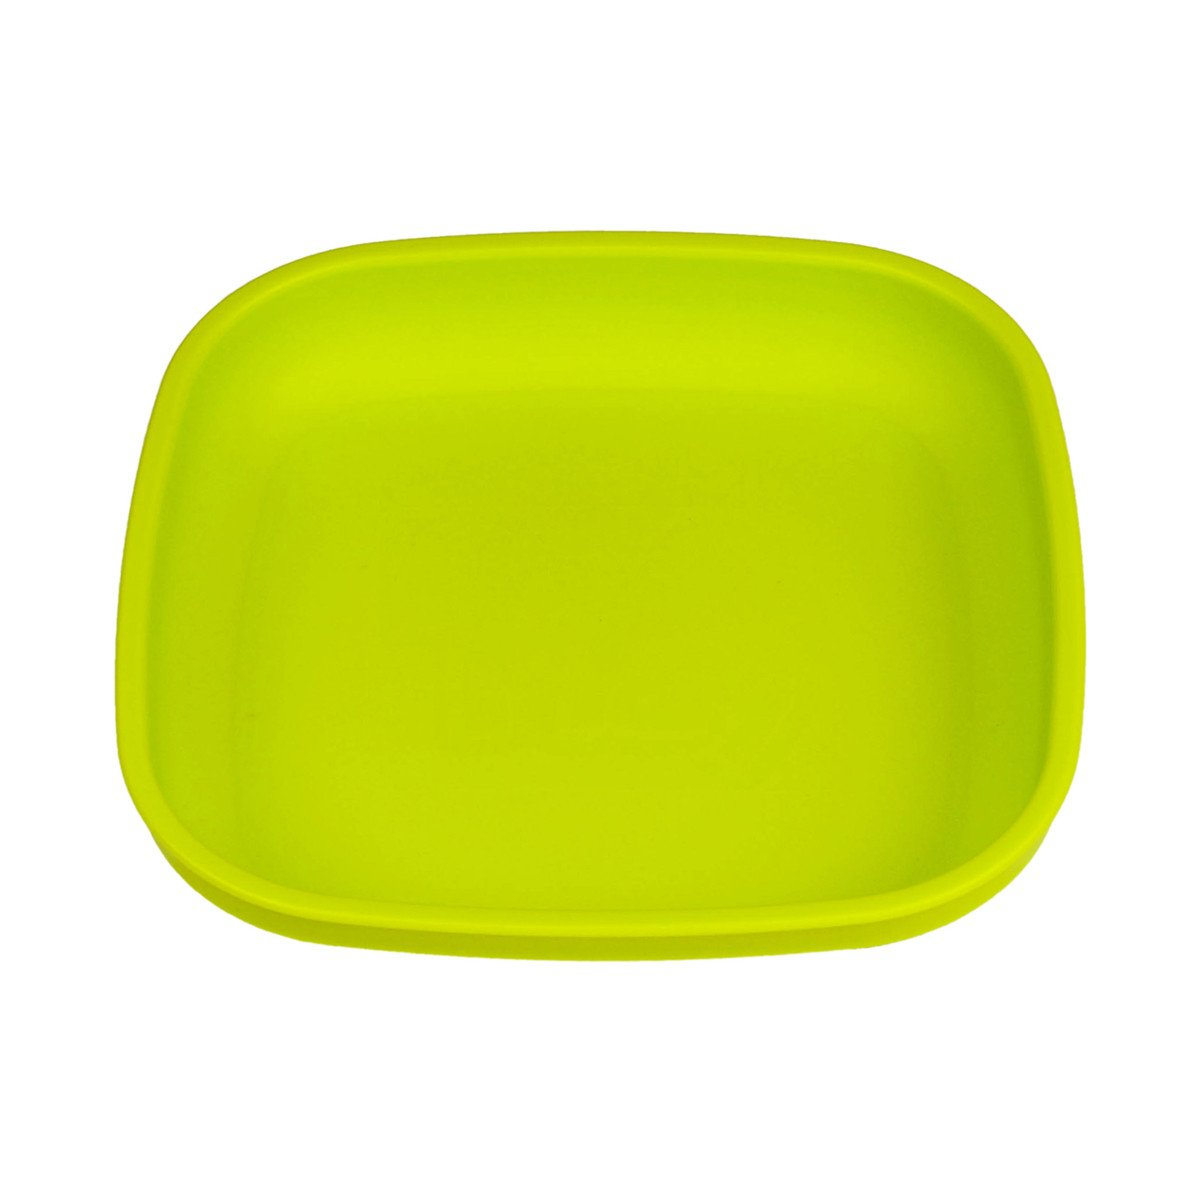 Replay Plate  Light Green - Replay - Little Earth Nest - 15